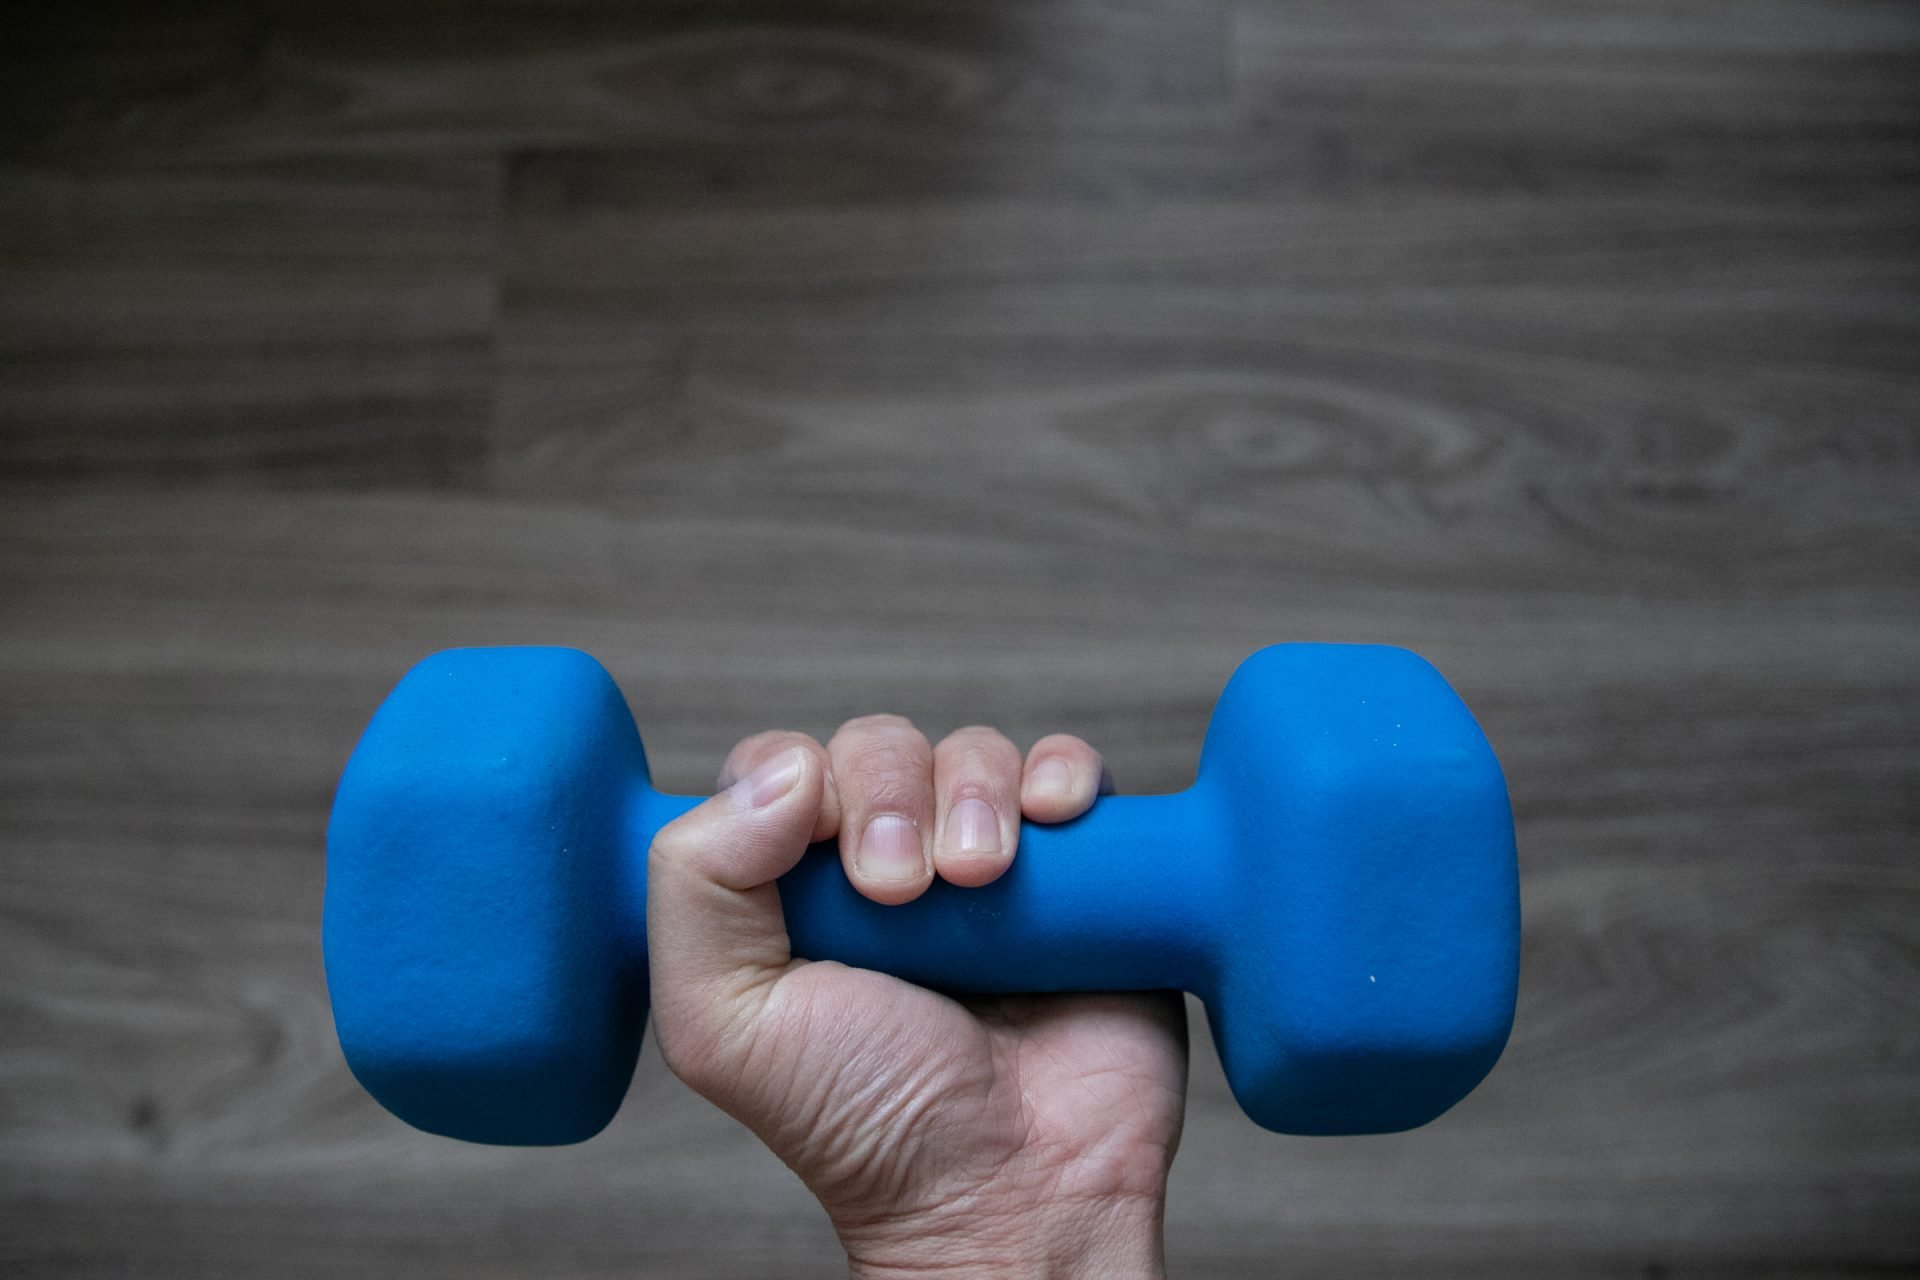 Left Hand Holding Blue Dumbbell